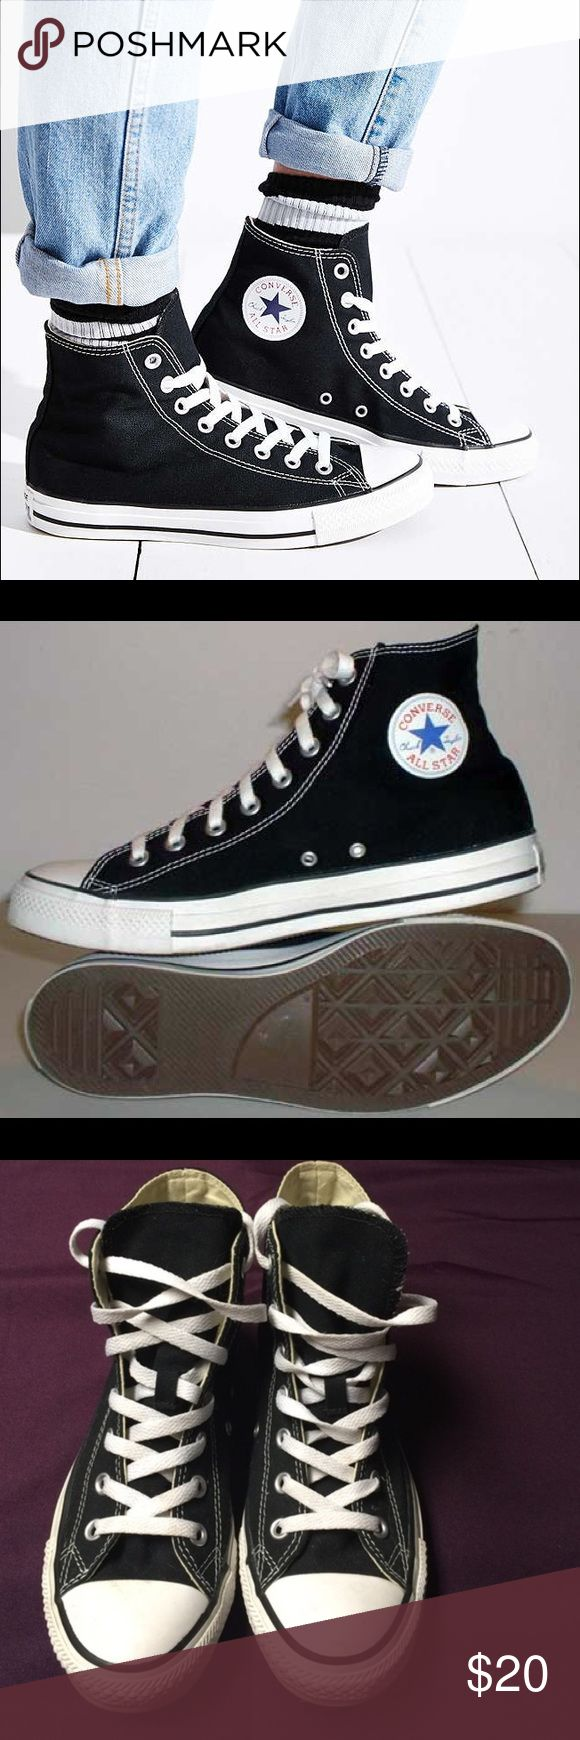 Black converse high tops  Gently used converse tennis shoes. True to size. These shoes are so much fun! You can dress them up or you can dress them down. They are perfect for going on adventures or taking trips to the mall! Who doesn't love converse?  Converse Shoes Sneakers